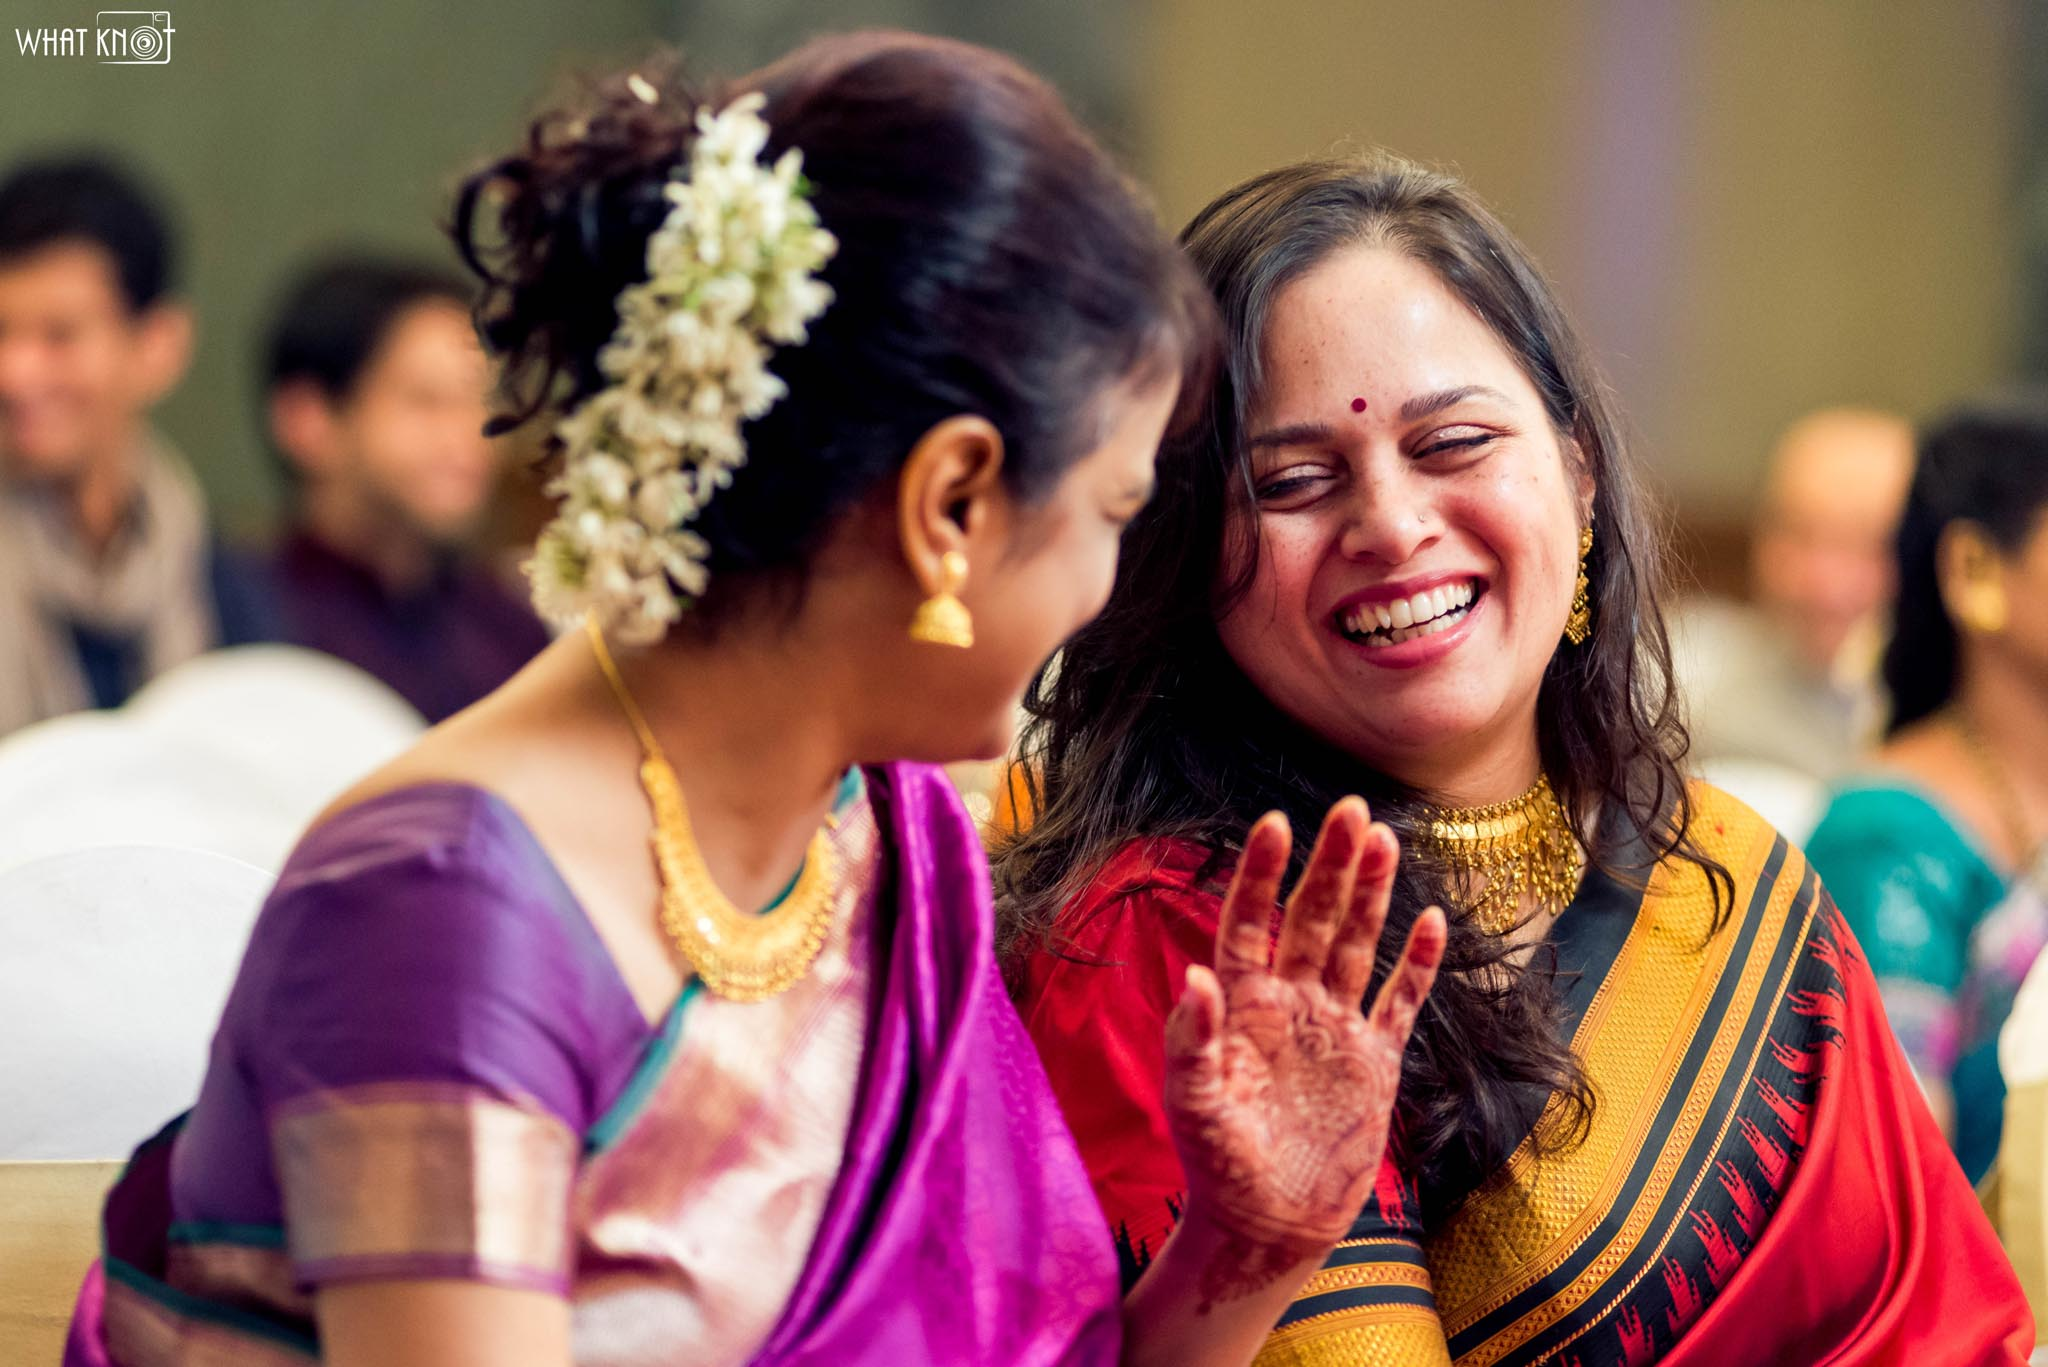 Candid-Wedding-Photography-WhatKnot-Marathi-103